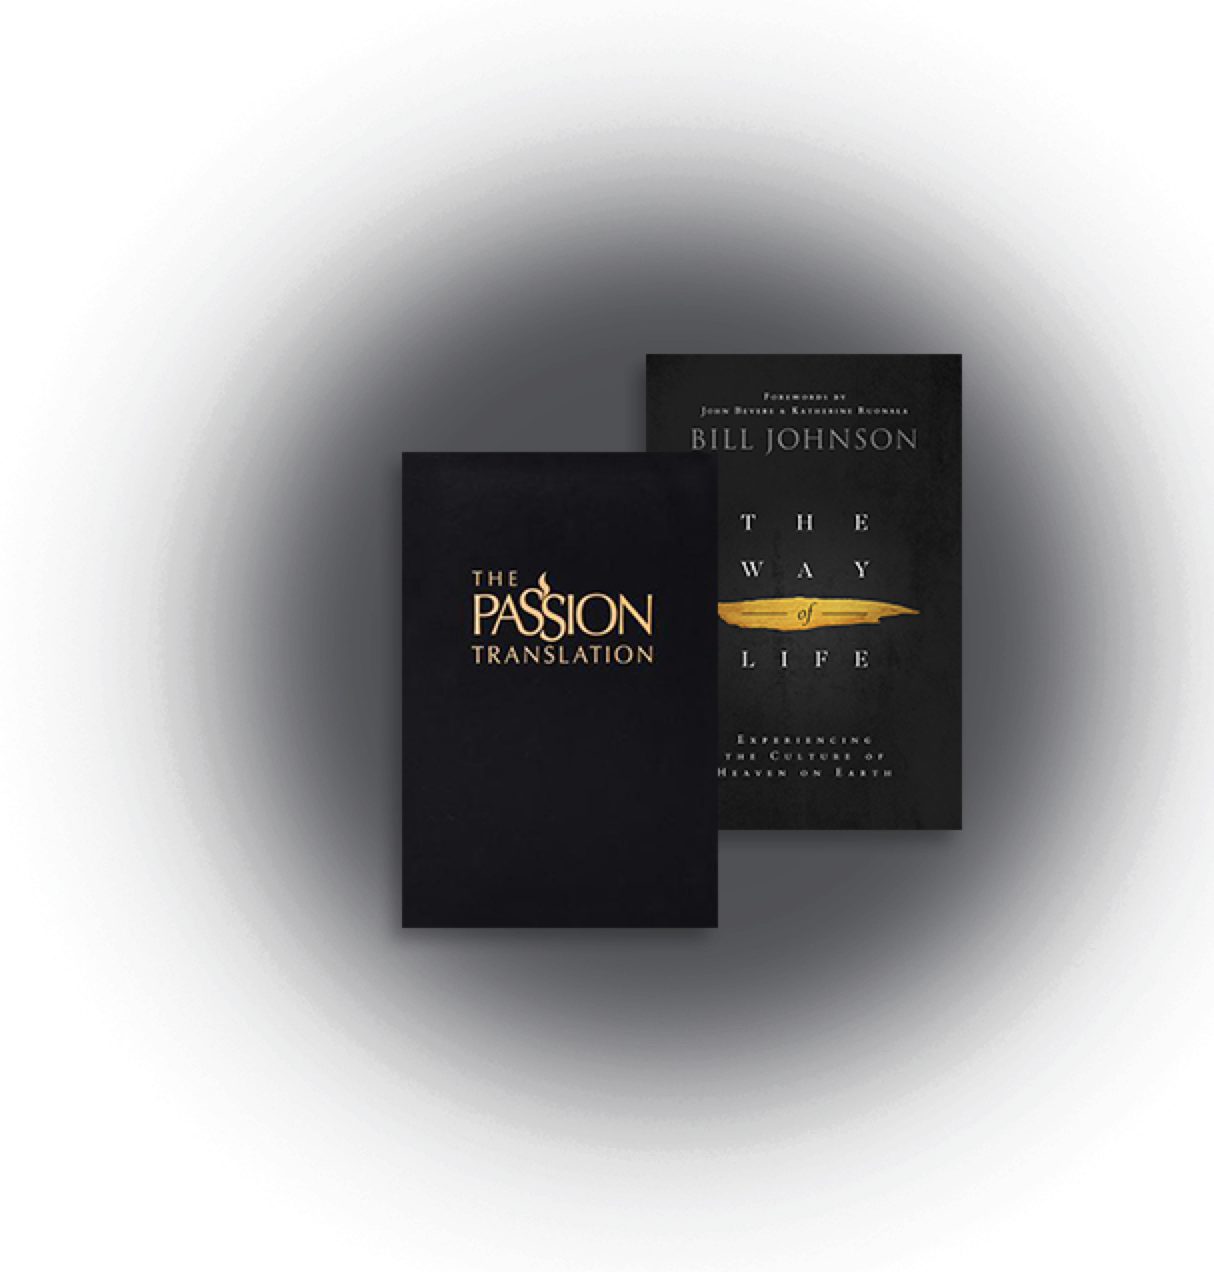 Books: The Passion Translation, 2nd Edition, The Way of Life, By Bill Johnson